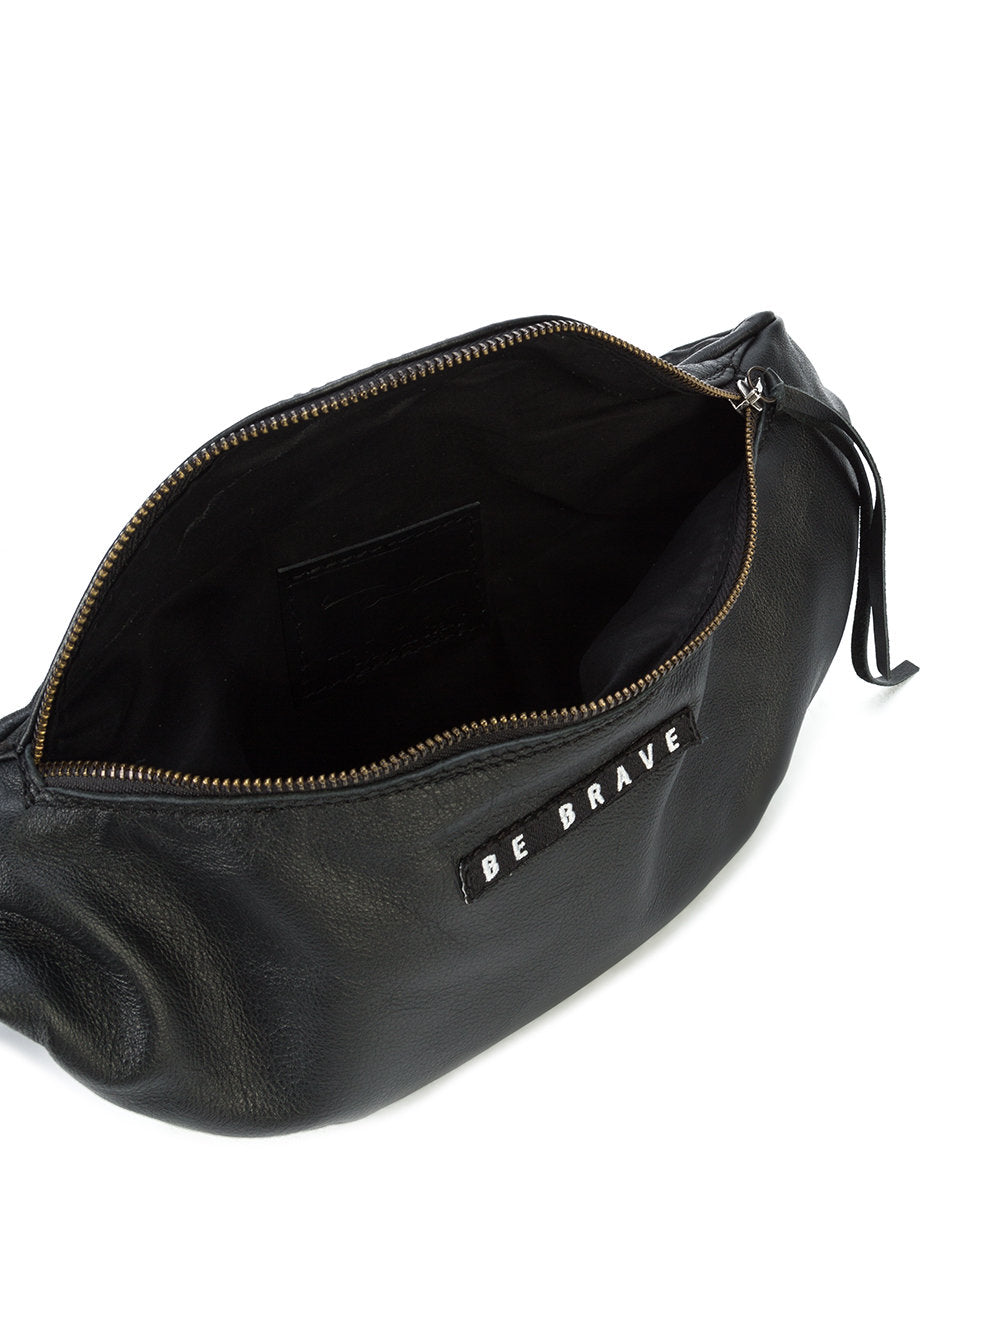 Barbara Bologna Black Leather Marsupio Fanny Pack - 4